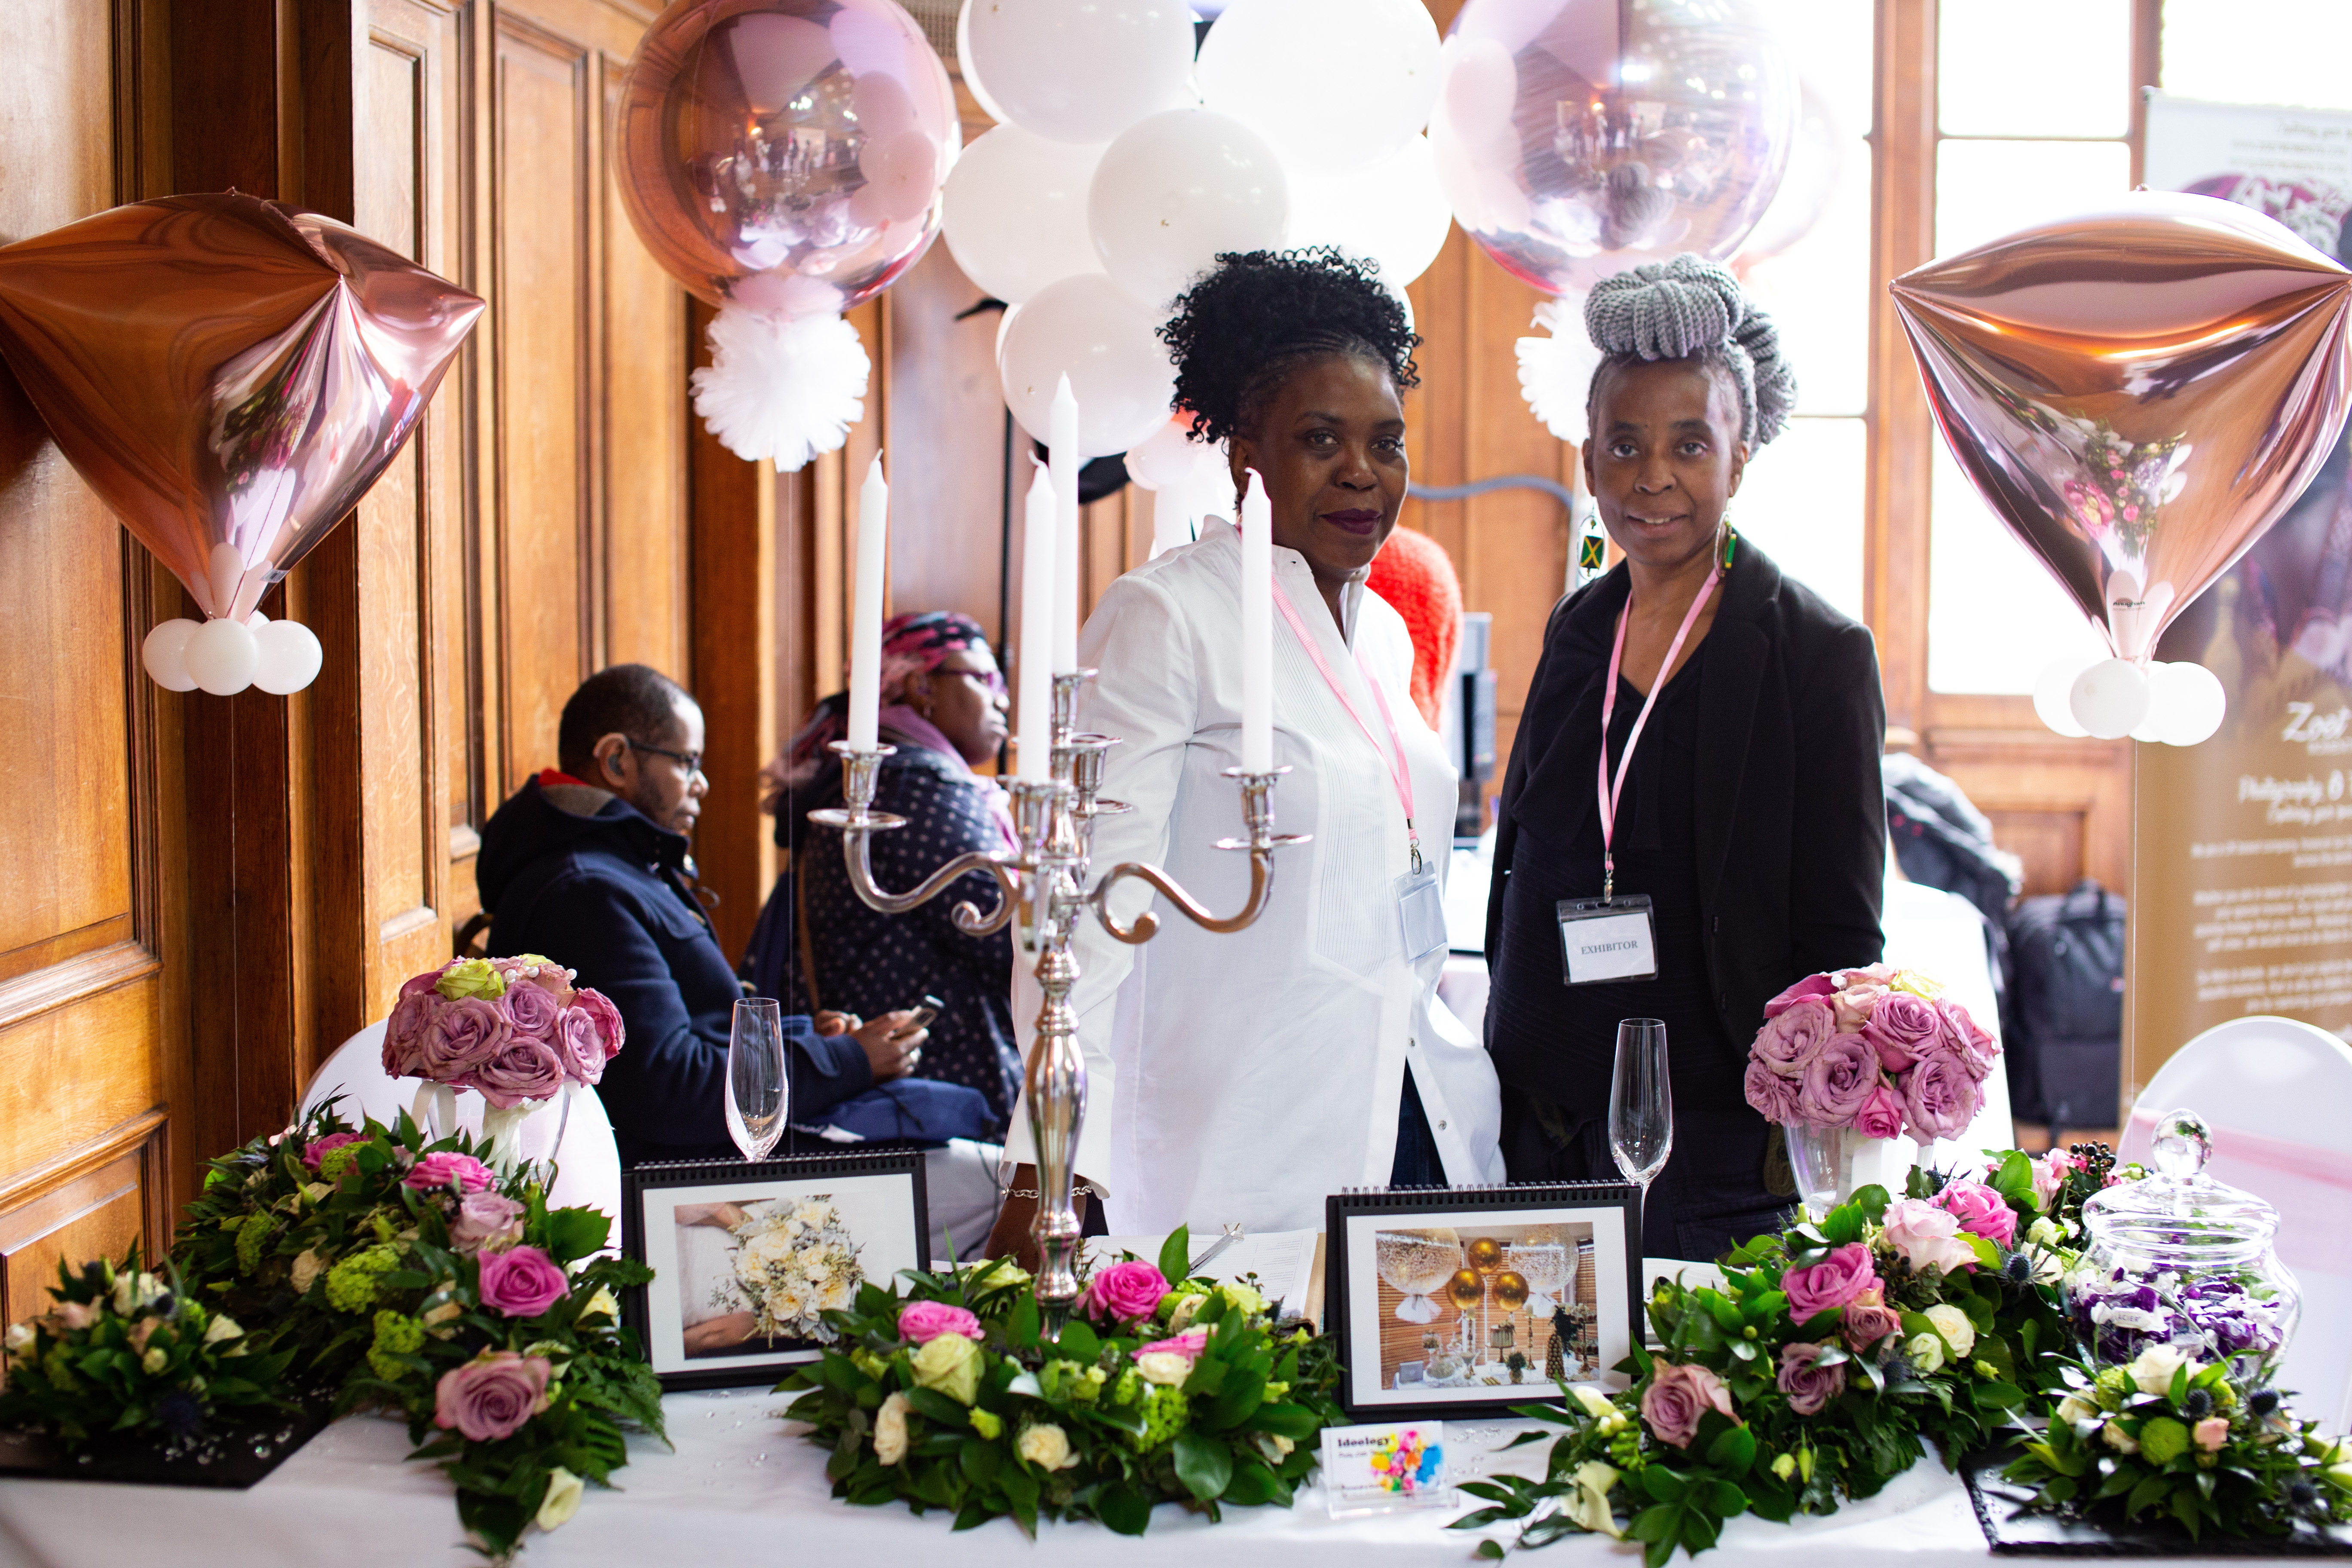 My-Dream-Wedding-Fair-London-Black-African-Caribbean-Bridal-Show-00113